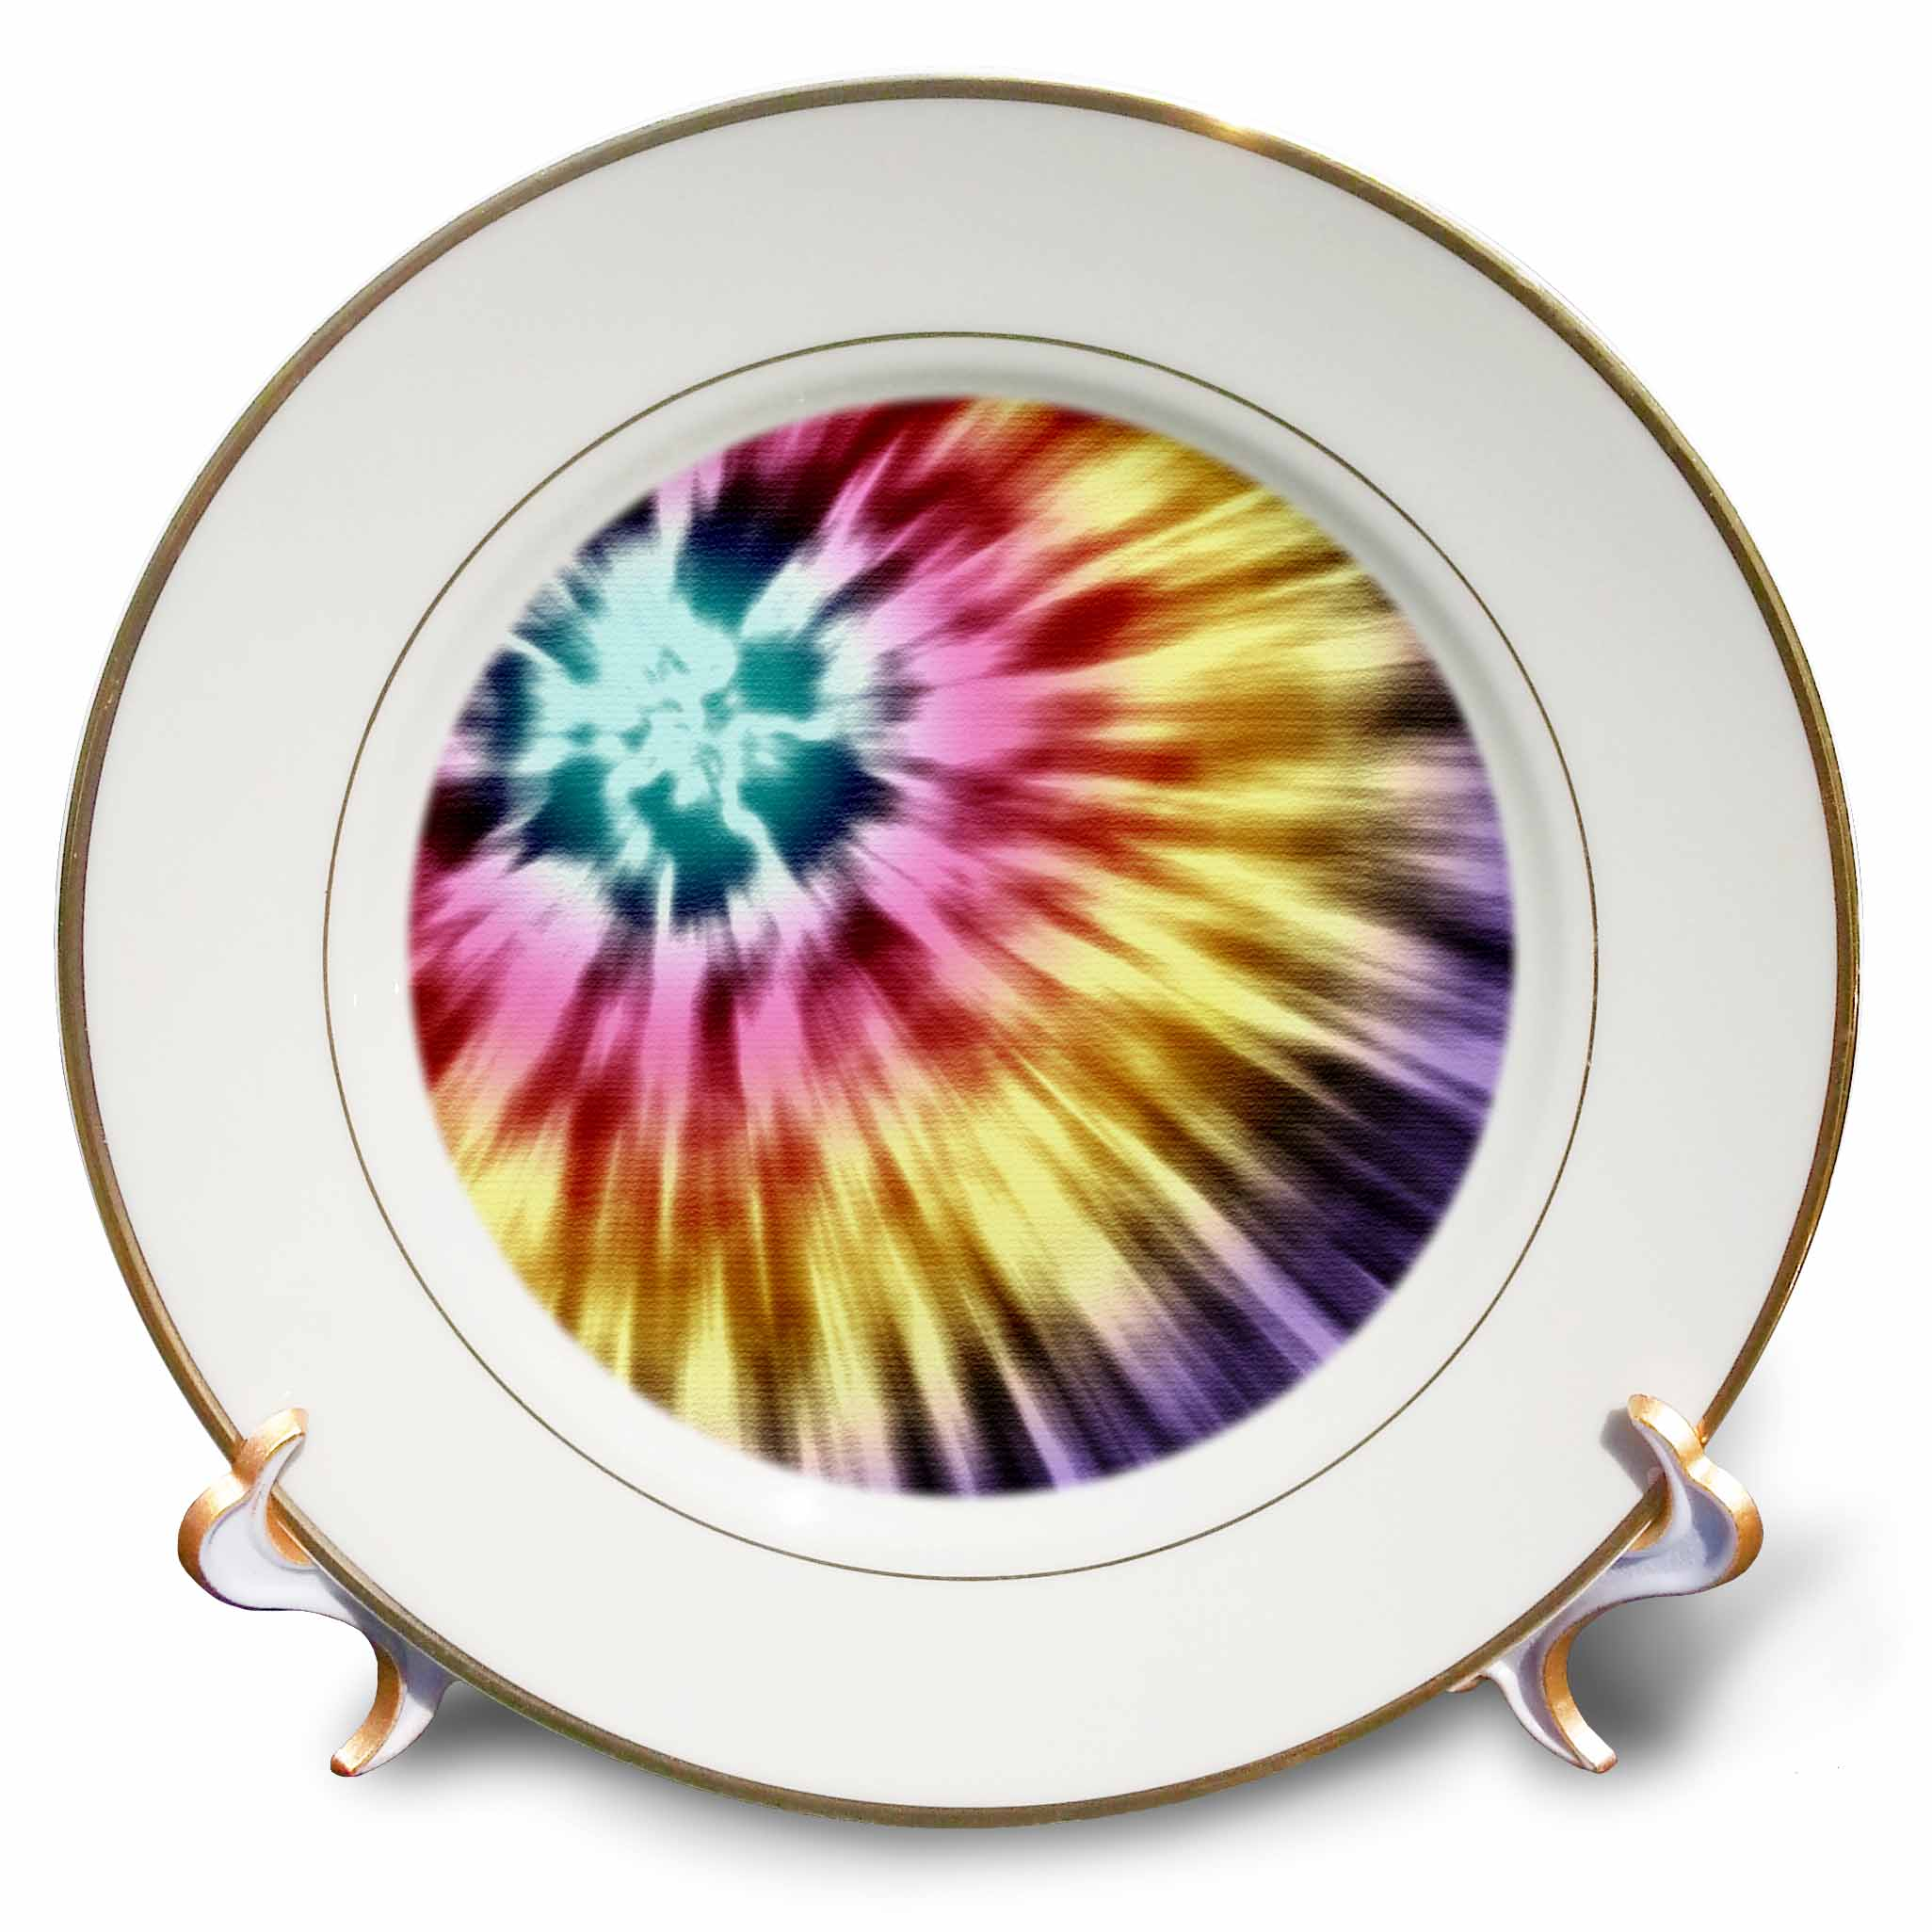 3dRose Tie Dye Purple starburst tie dye design in purple yellow and red, Porcelain Plate, 8-inch